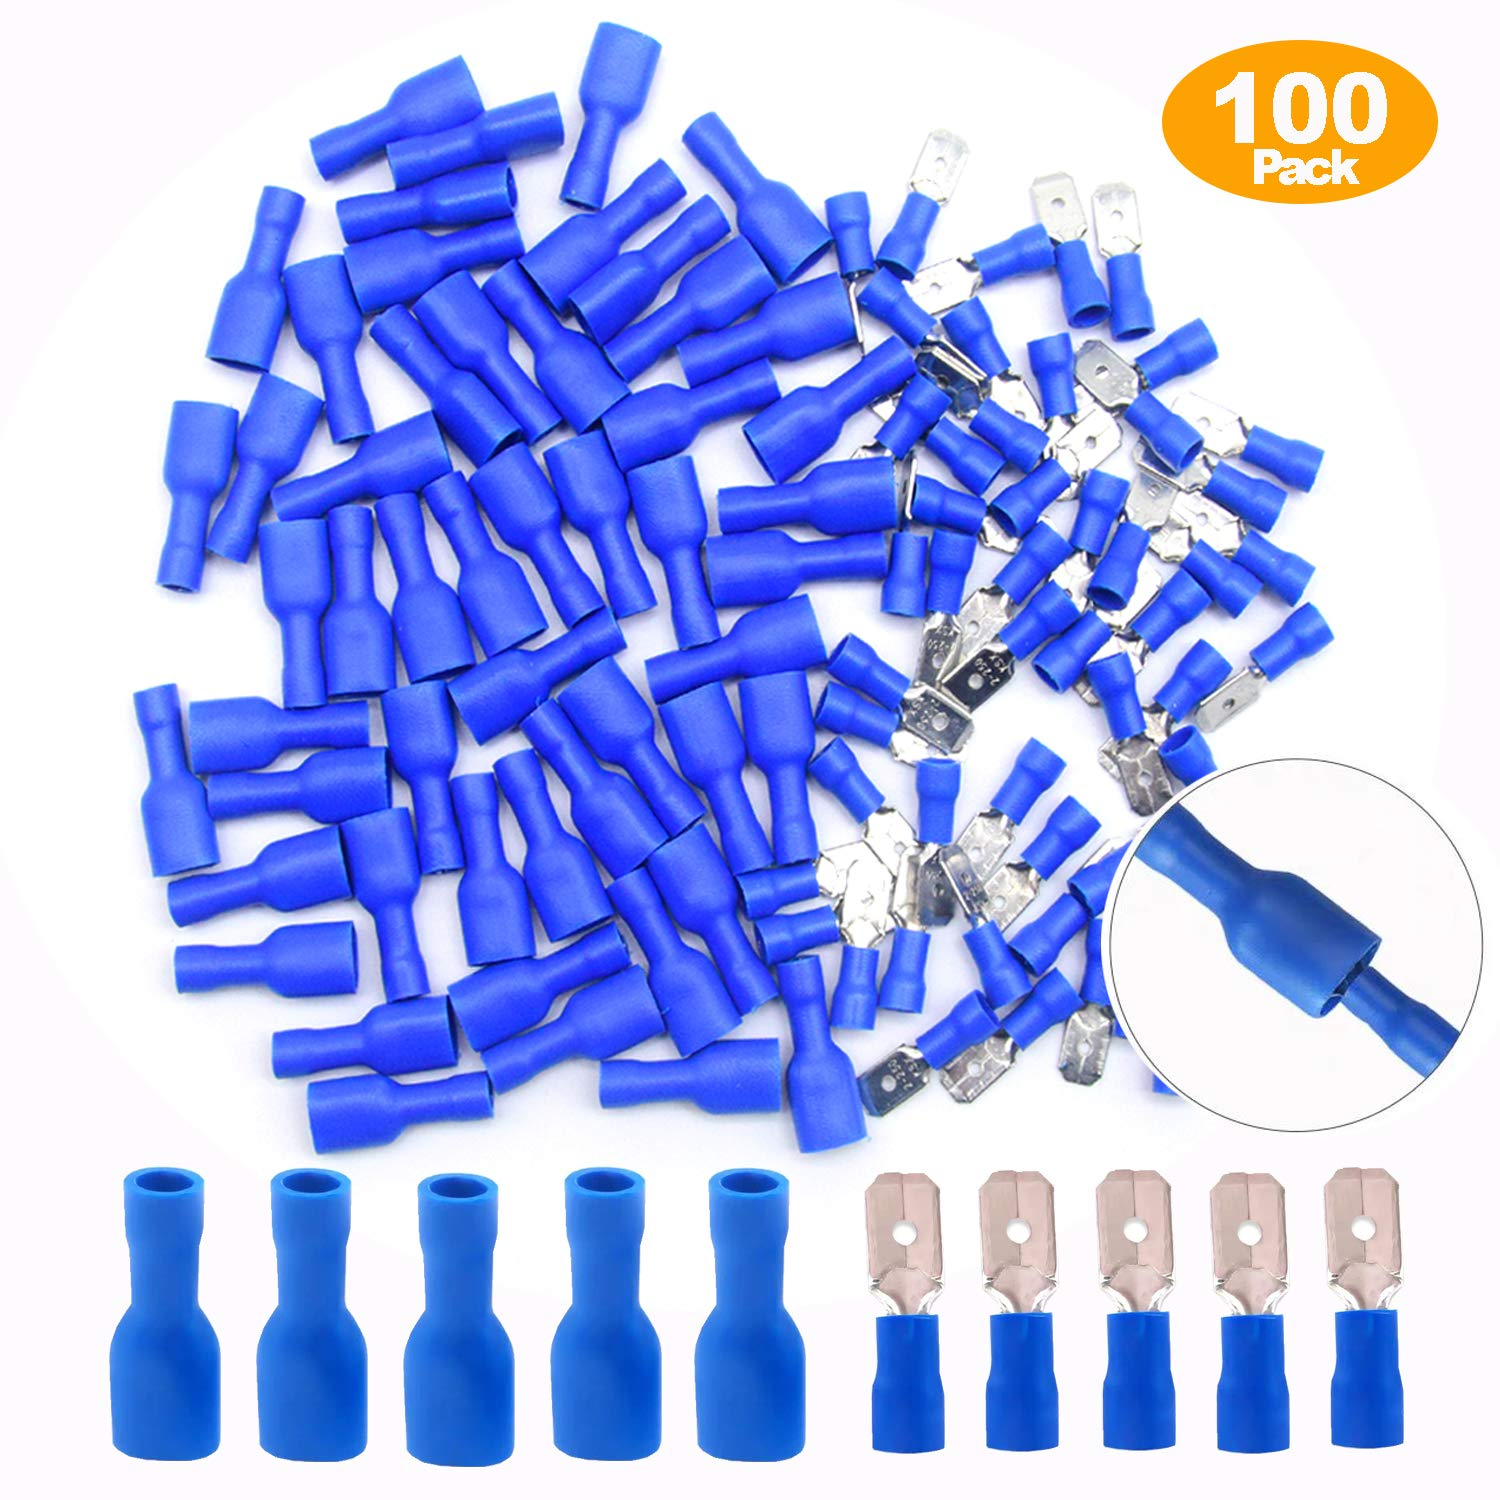 CEEYSEE 100PCS 16-14 AWG Insulated Female Male Spade Connector Quick Splice Wire Terminals Wire Crimp Connectors (PSL)